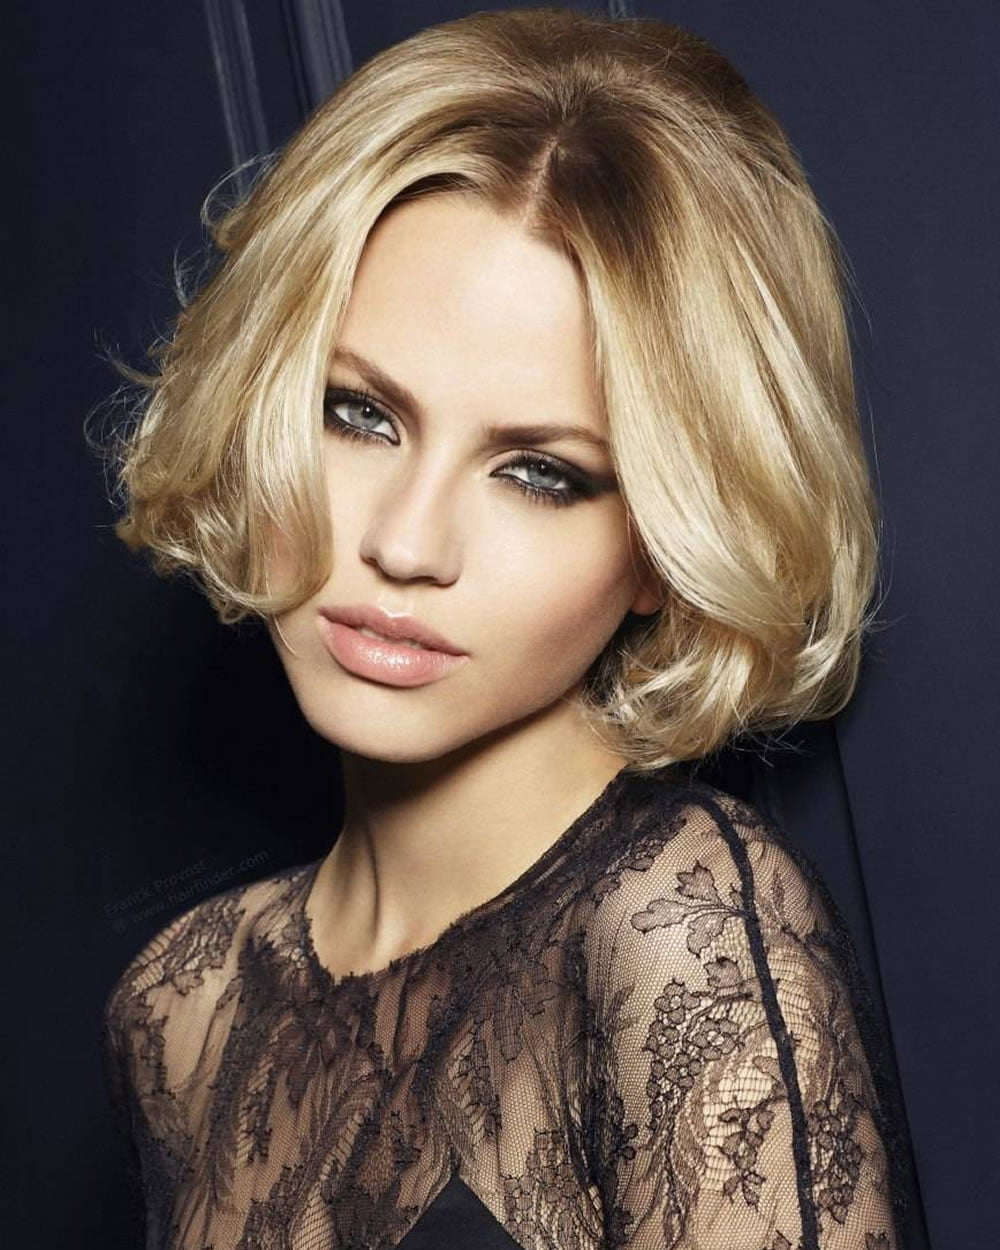 Bob Haircut Ideas For Fall Winter 2017 2018 22 Top Bob Cut 2018